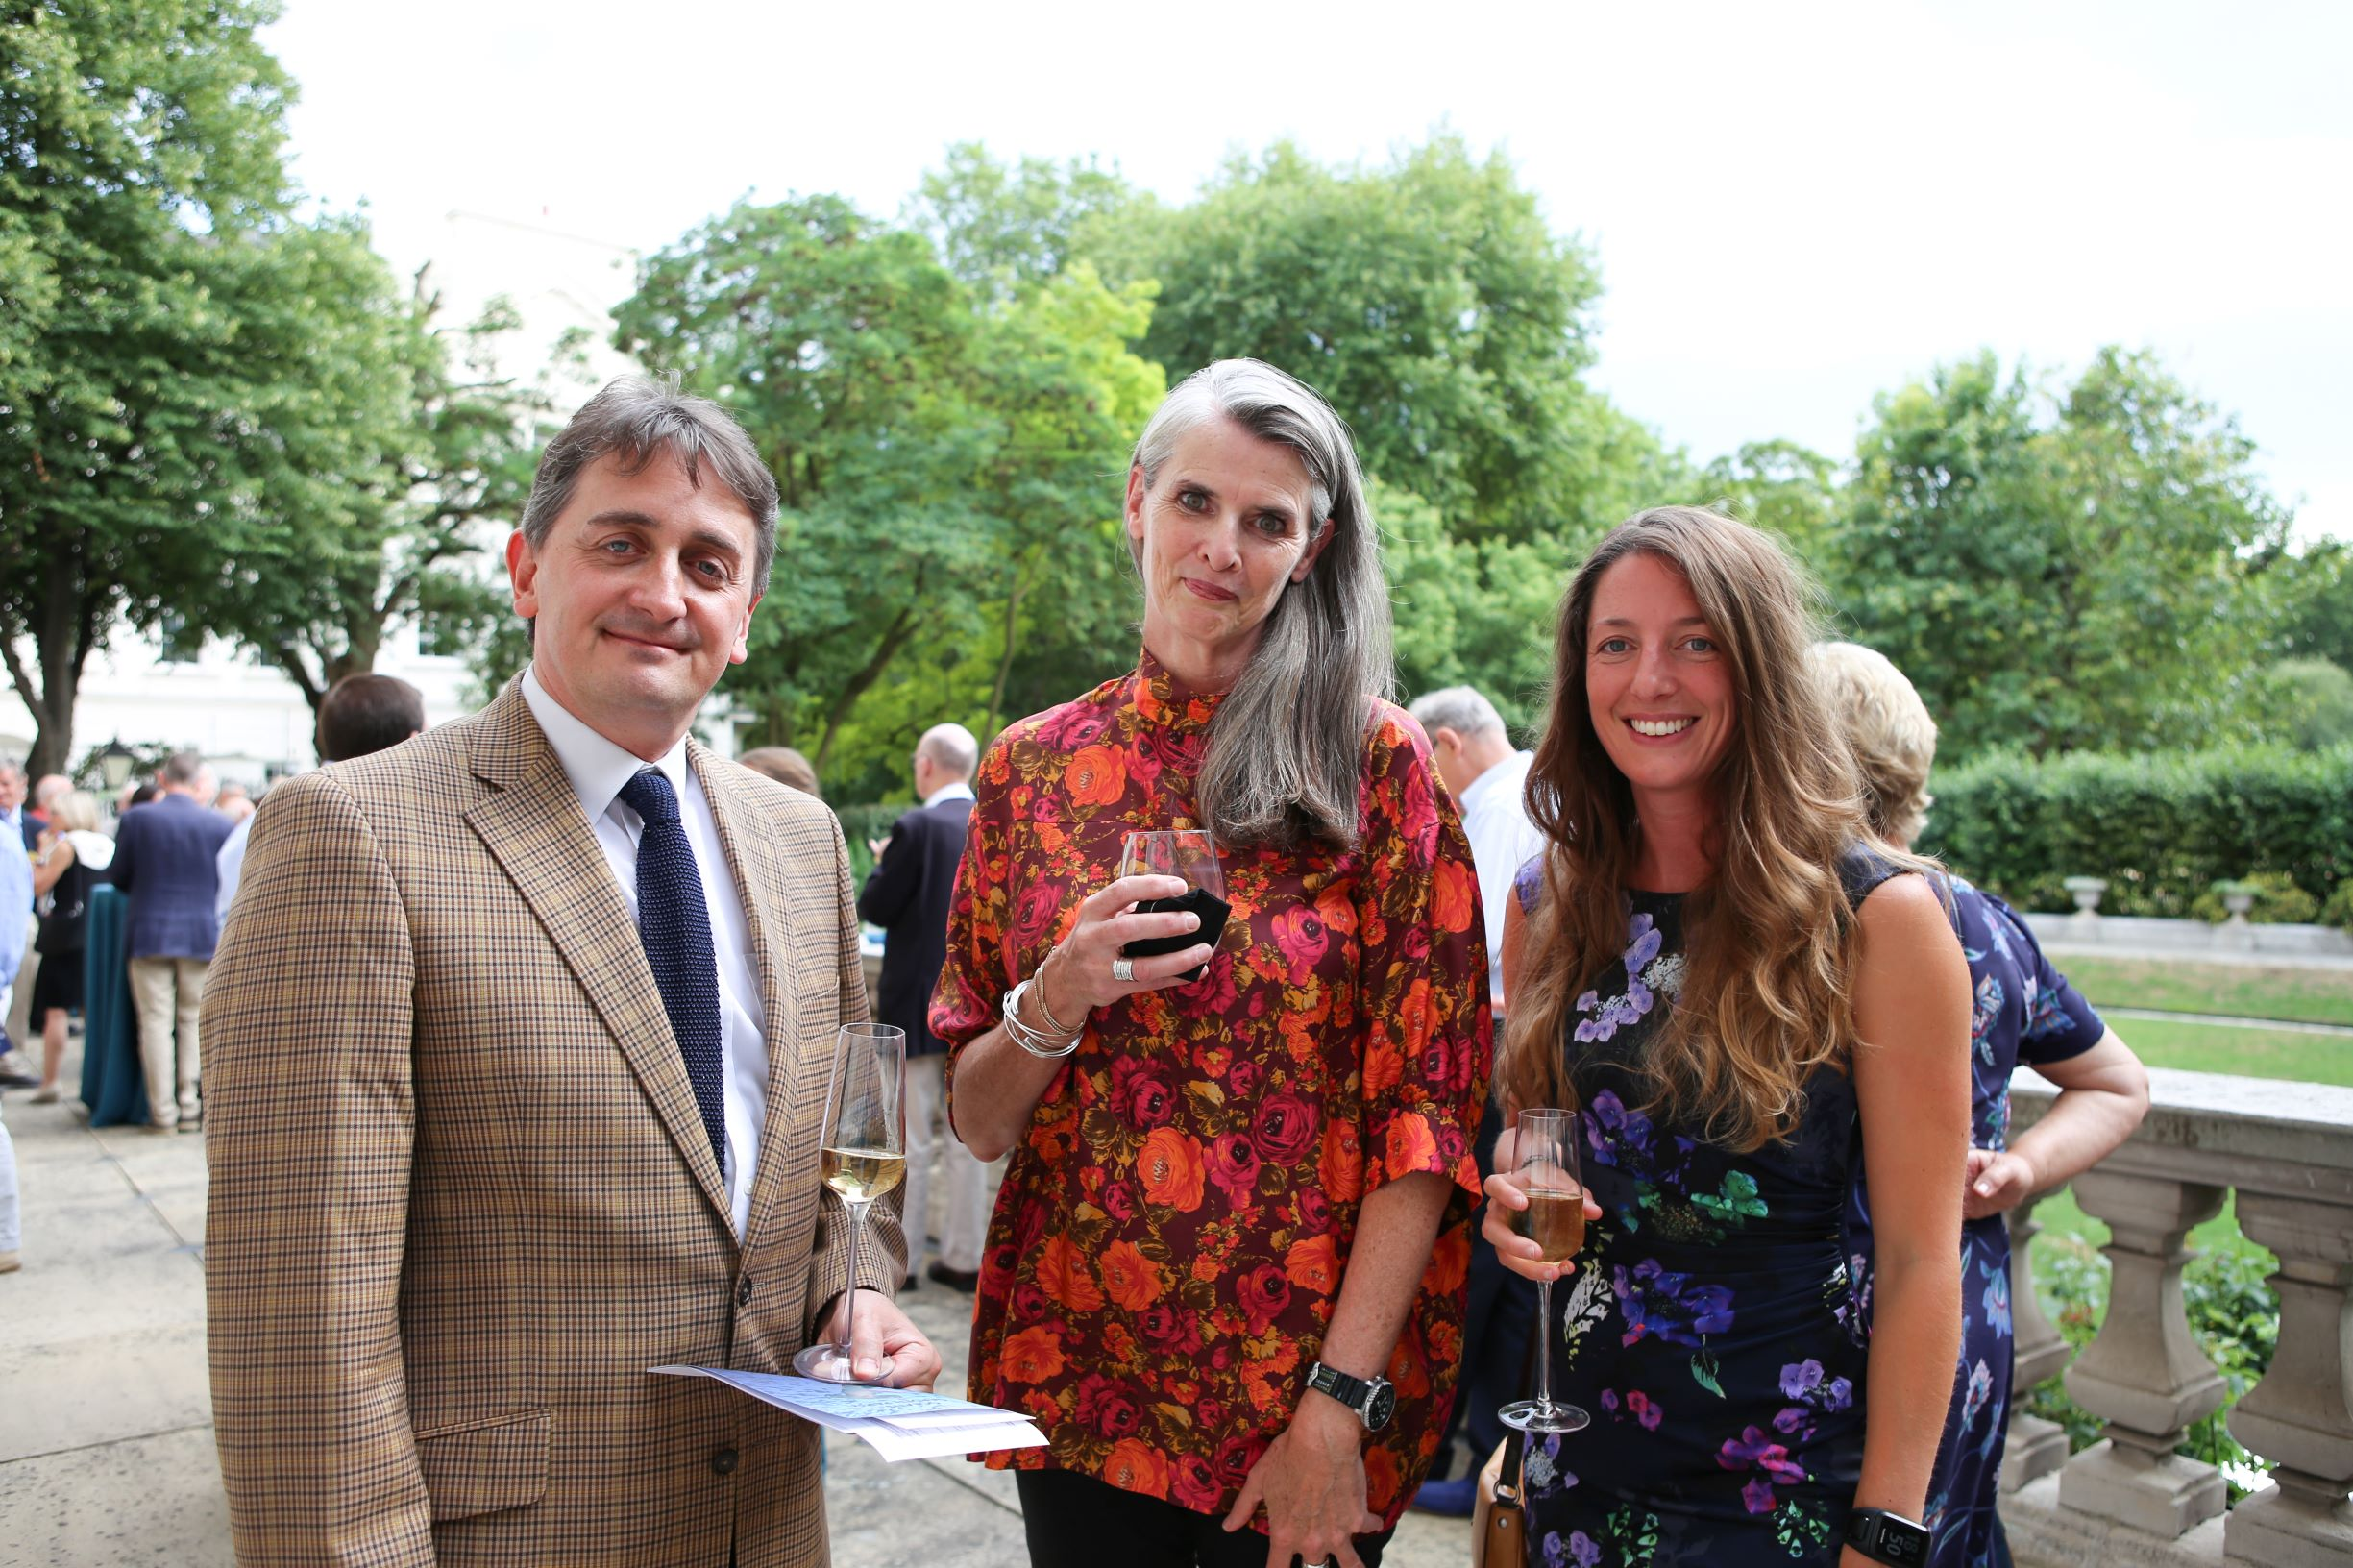 Jon Copley, Orla Doherty and Leigh Marsh - Oceans Garden Party 2018 © Akemi Yokoyama